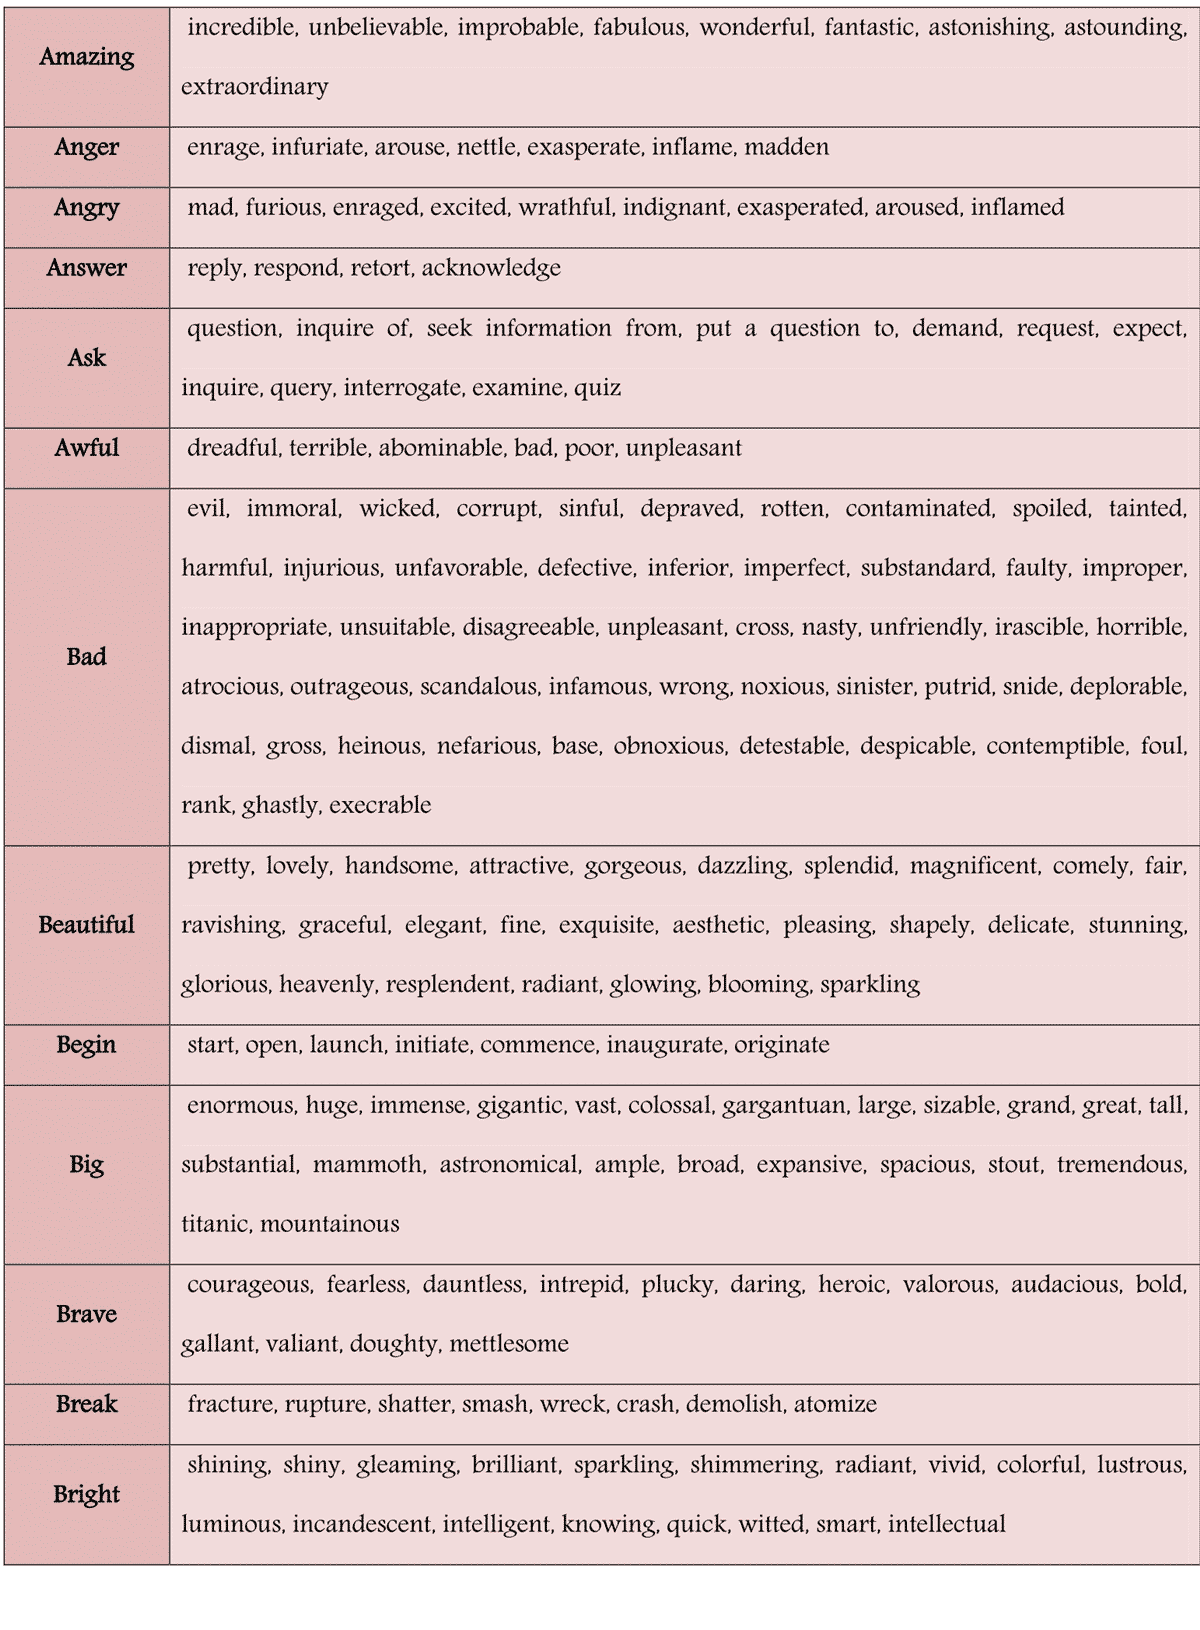 Worksheets Synonyms Words list of 100 common synonyms for improving your english fluent land here you will find a table commonly used words and their to improve english